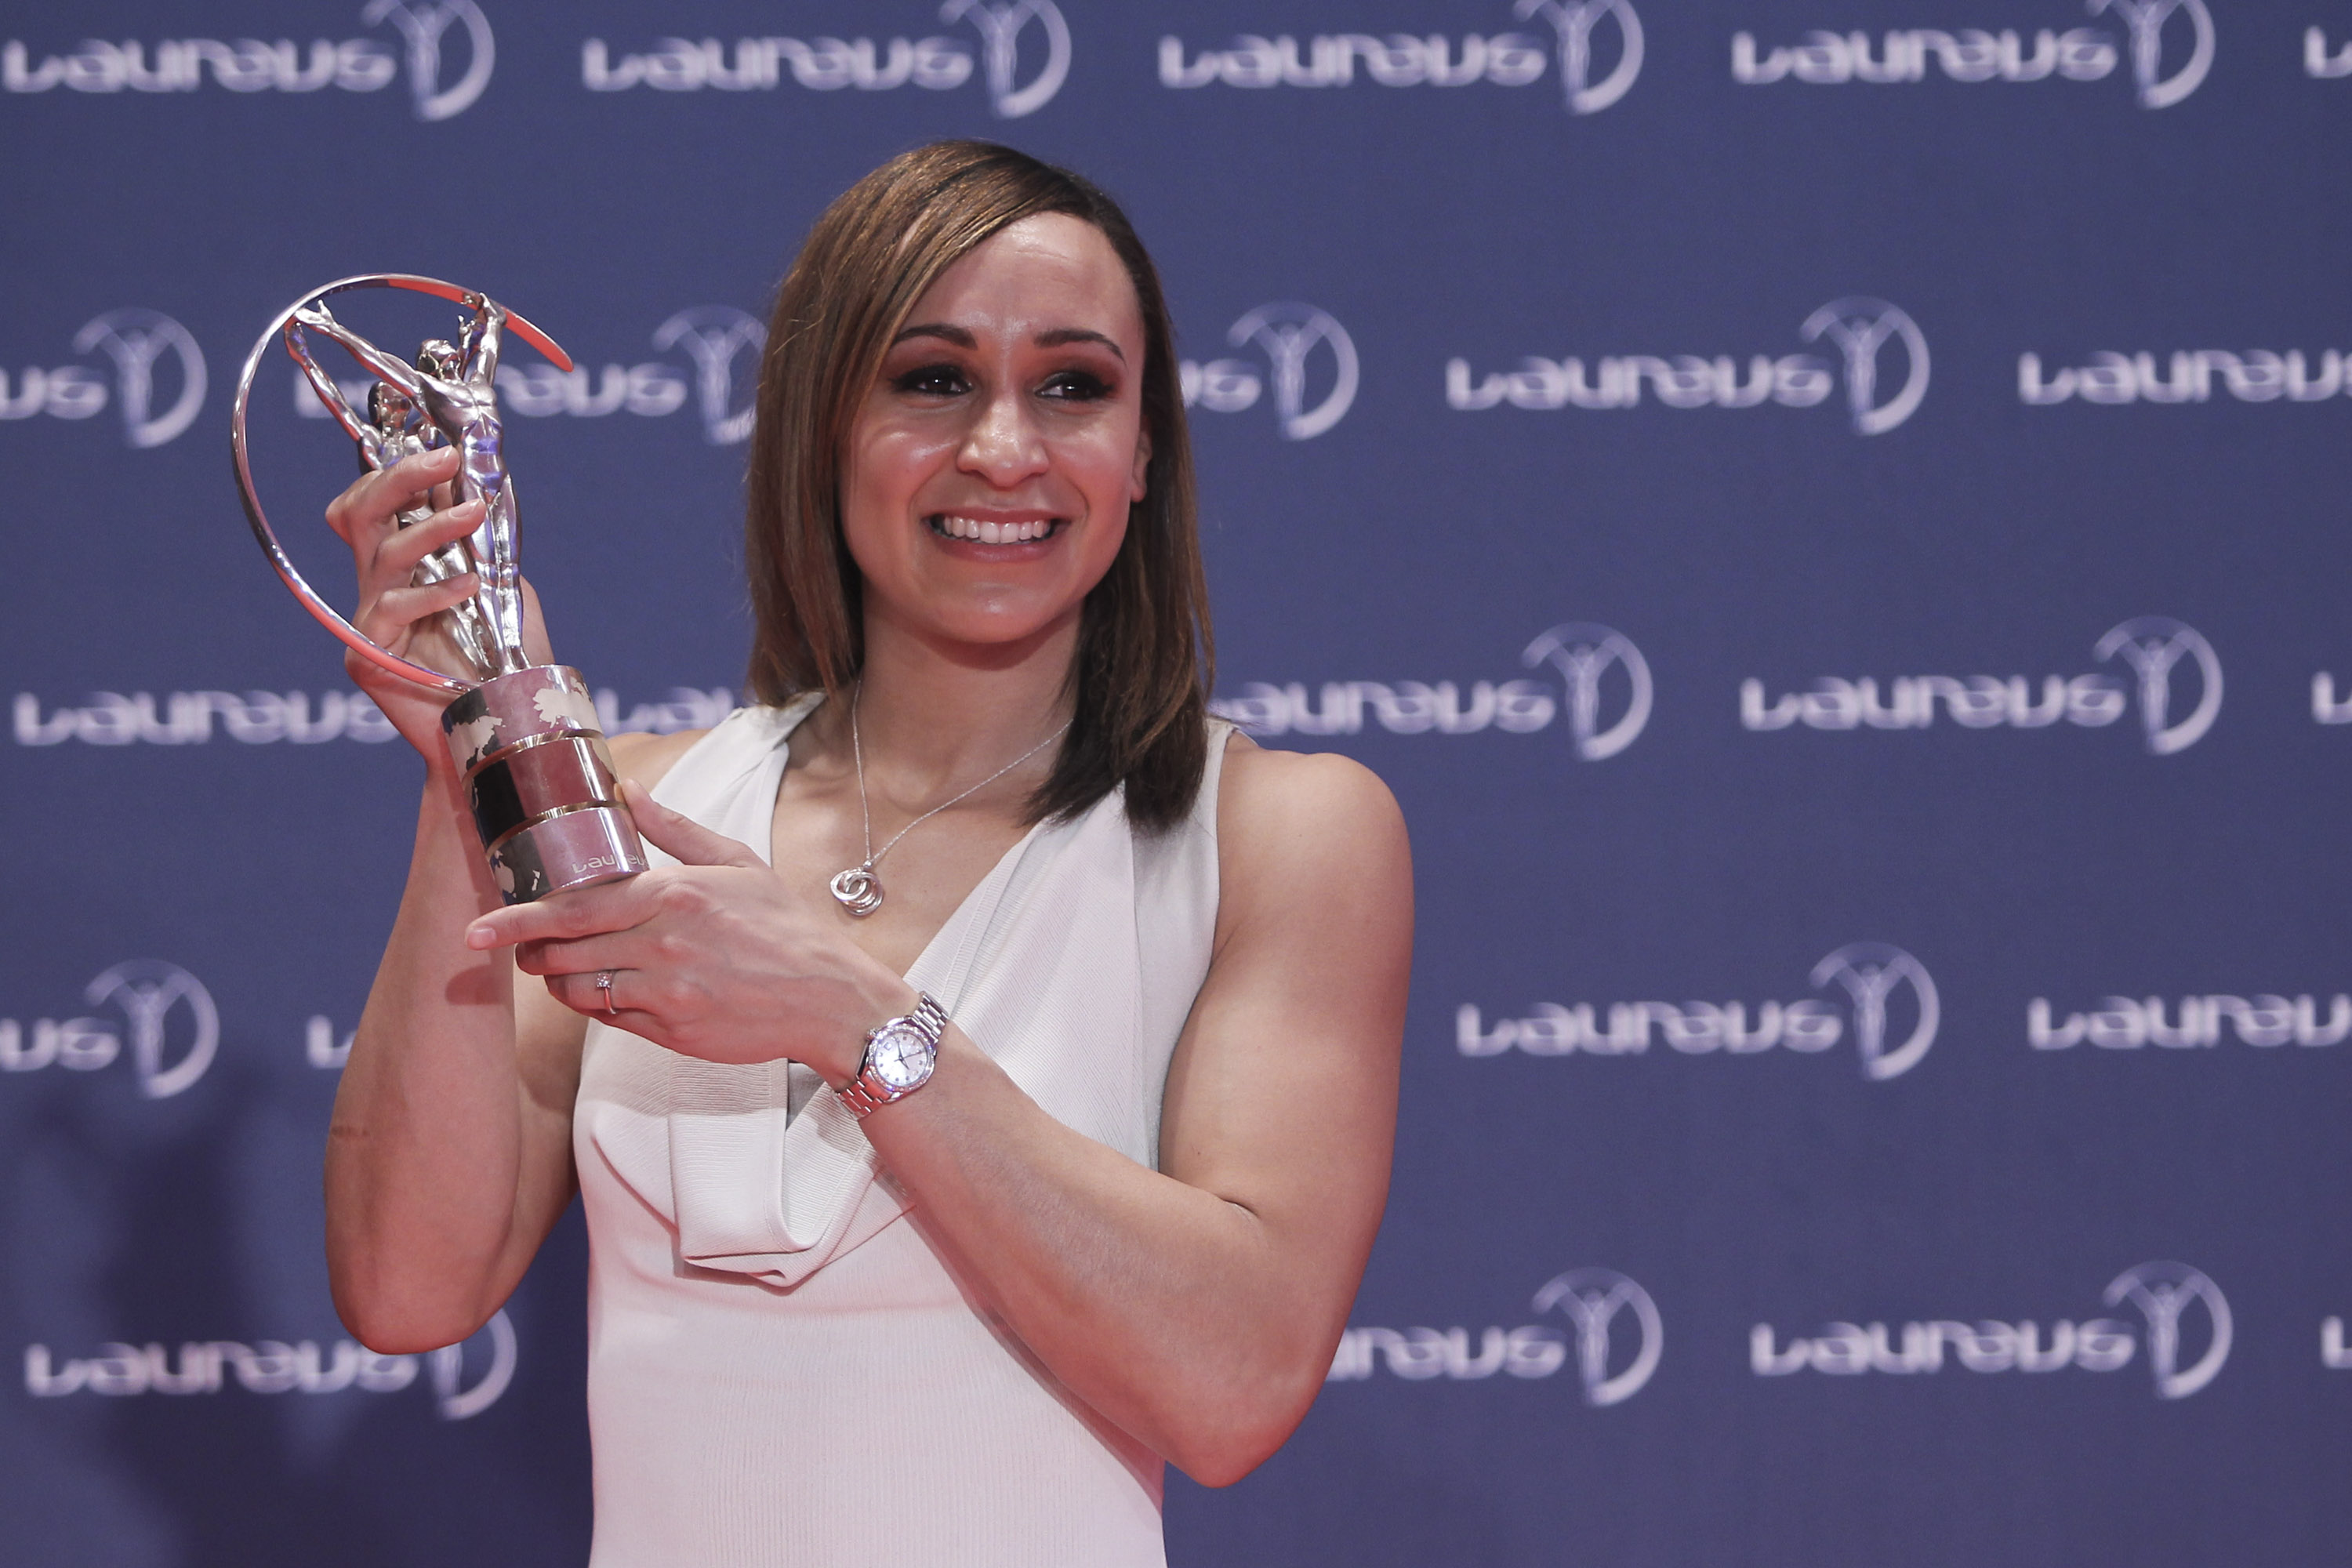 British Heptathlete Jessica Ennis holds up her Laureus World Sportswoman of the Year trophy as she poses for pictures during the Laureus World Sports Awards in Rio de Janeiro, Brazil, Monday, March 11, 2013. (AP Photo)